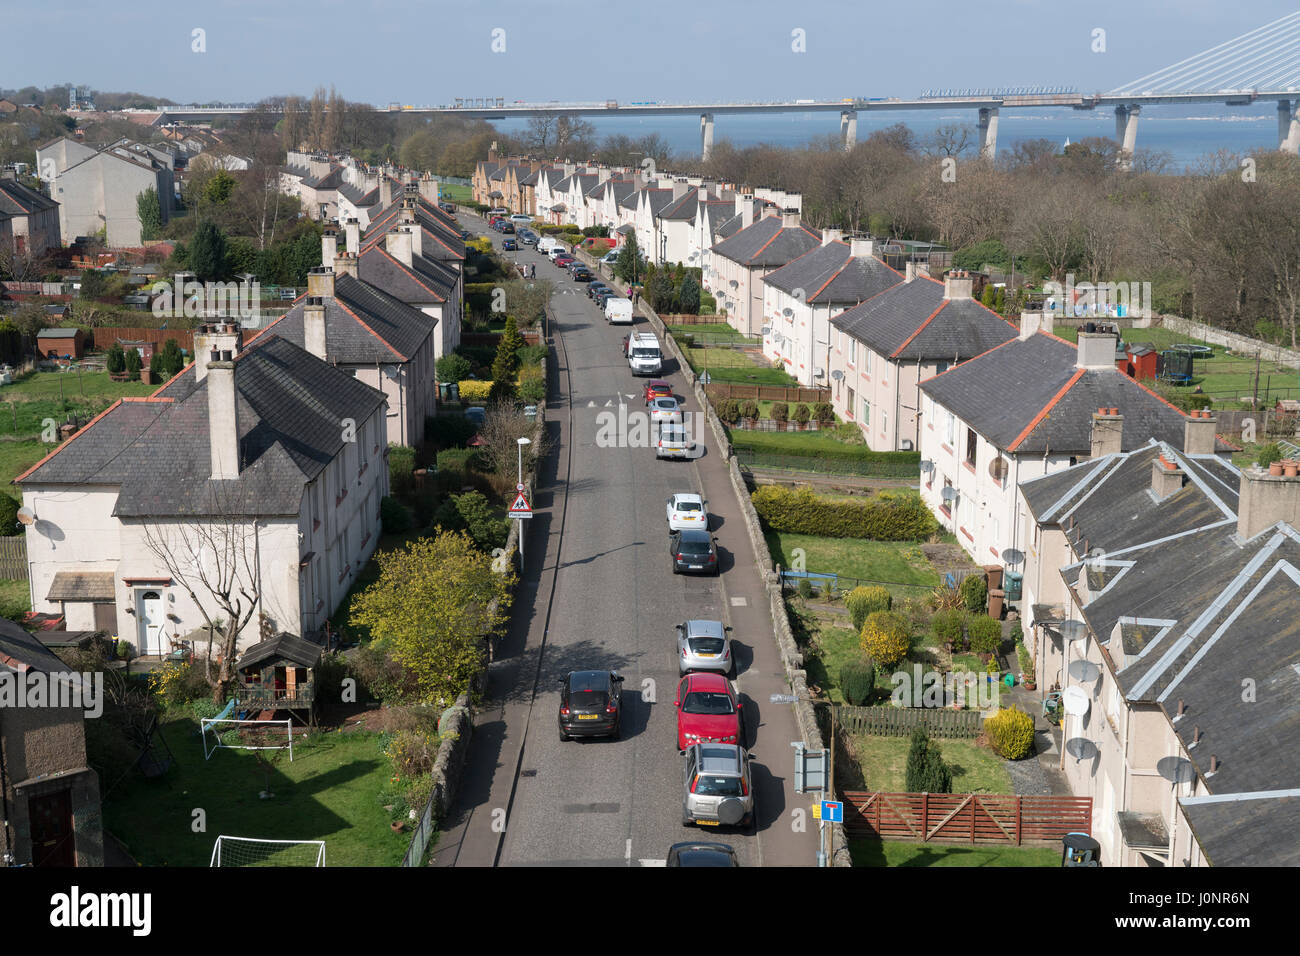 Looking down roofs on row of houses in South Queensferry Scotland, United Kingdom - Stock Image